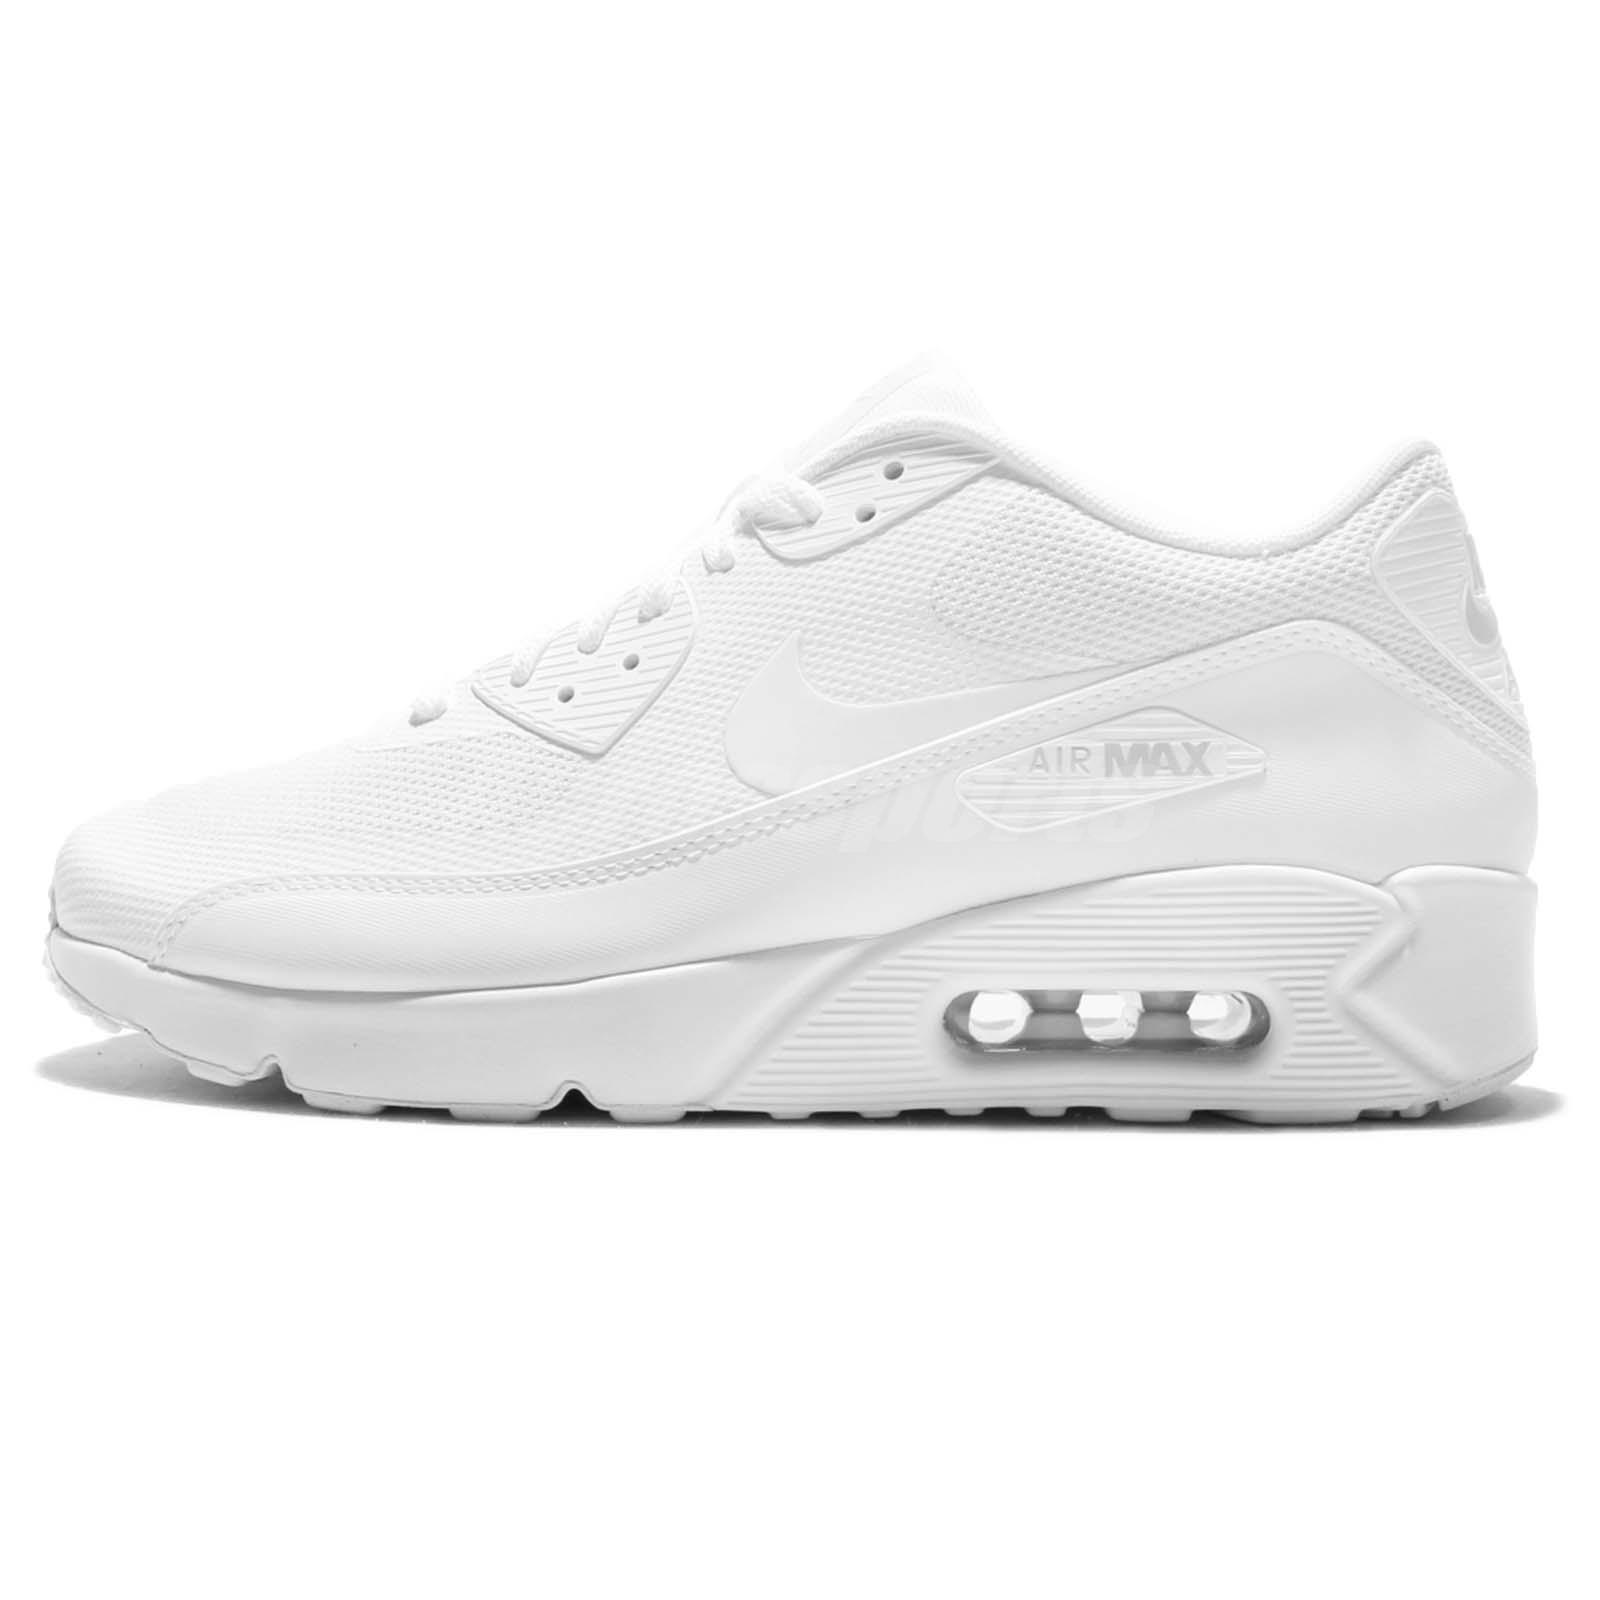 new arrival d82d5 4399b ... Nike Air Max 90 Ultra 2.0 Essential Triple White Men Running Shoes  875695-101 ...